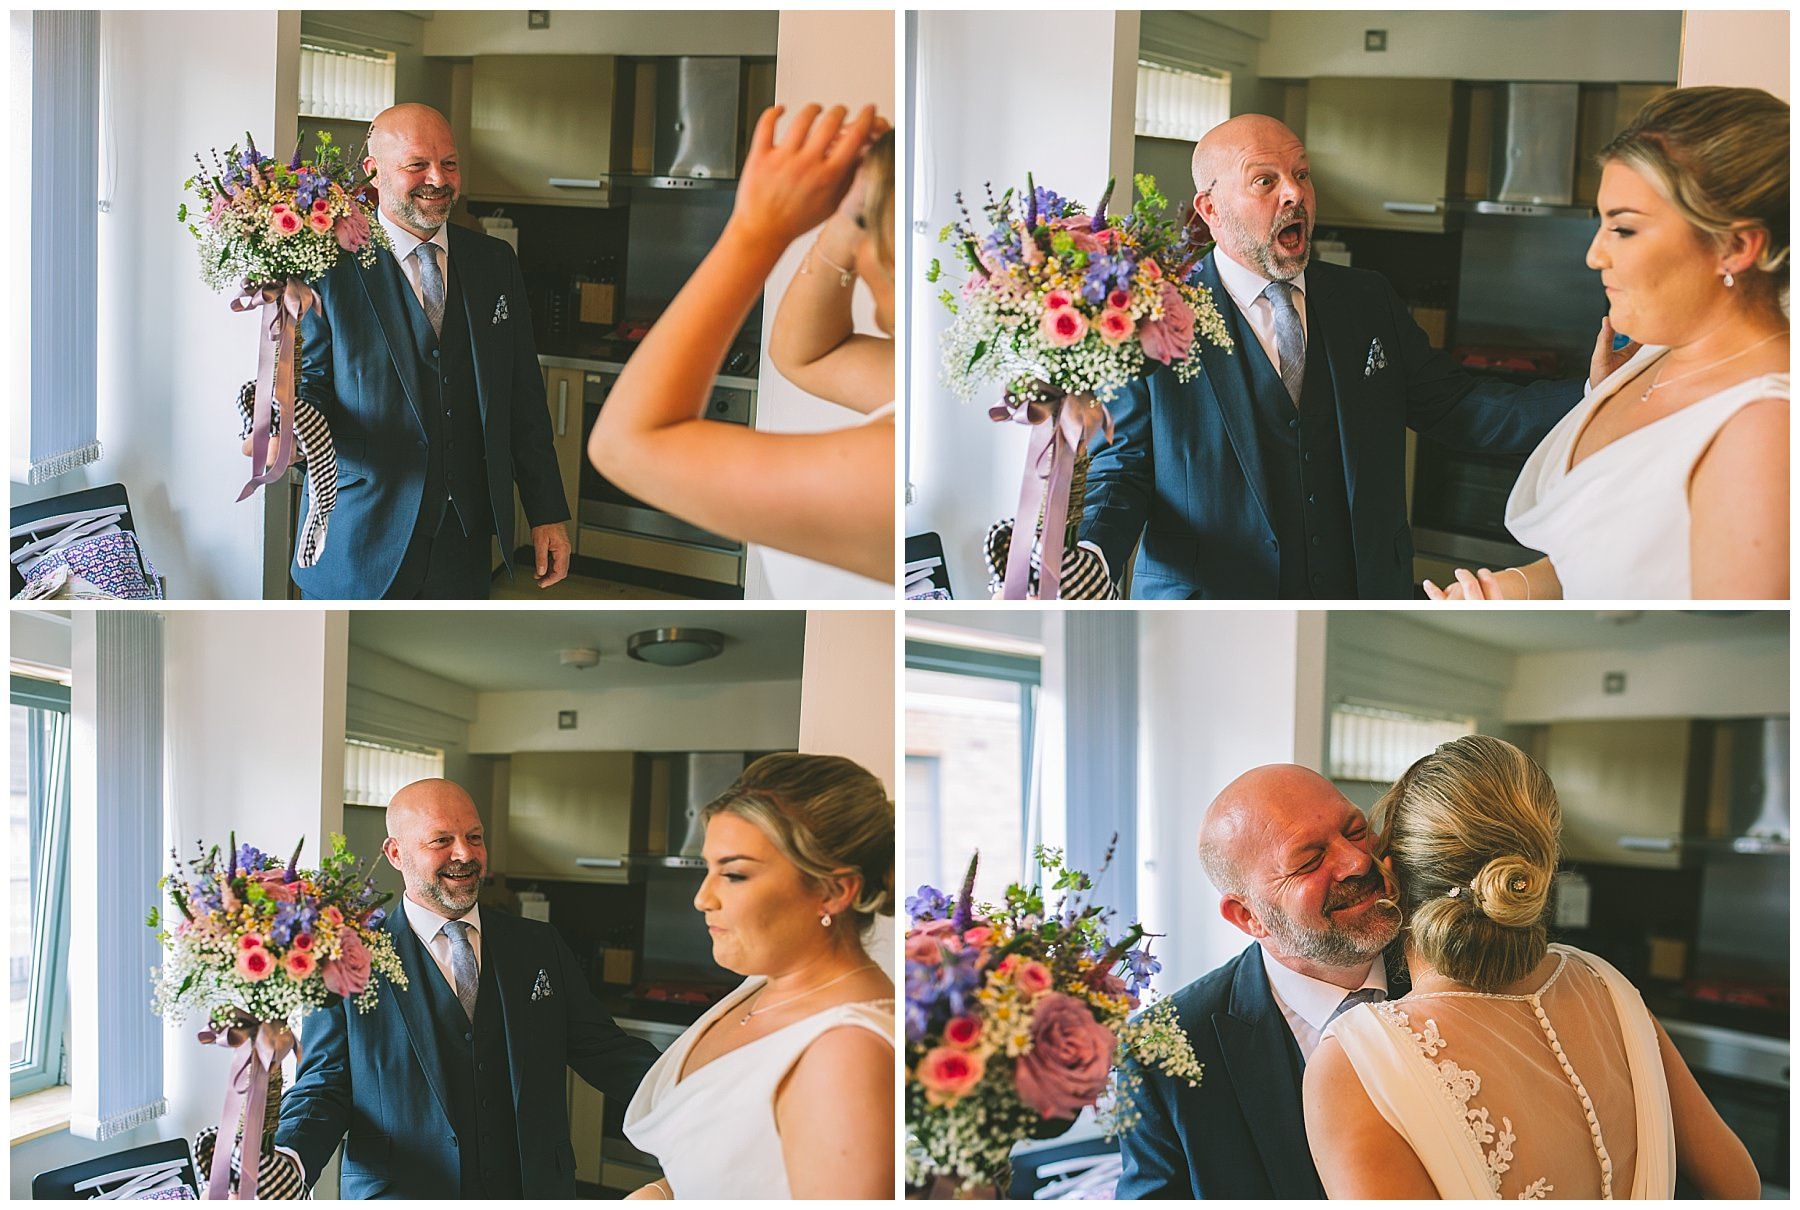 Brides father reacts to seeing his daughetrin her wedding dress